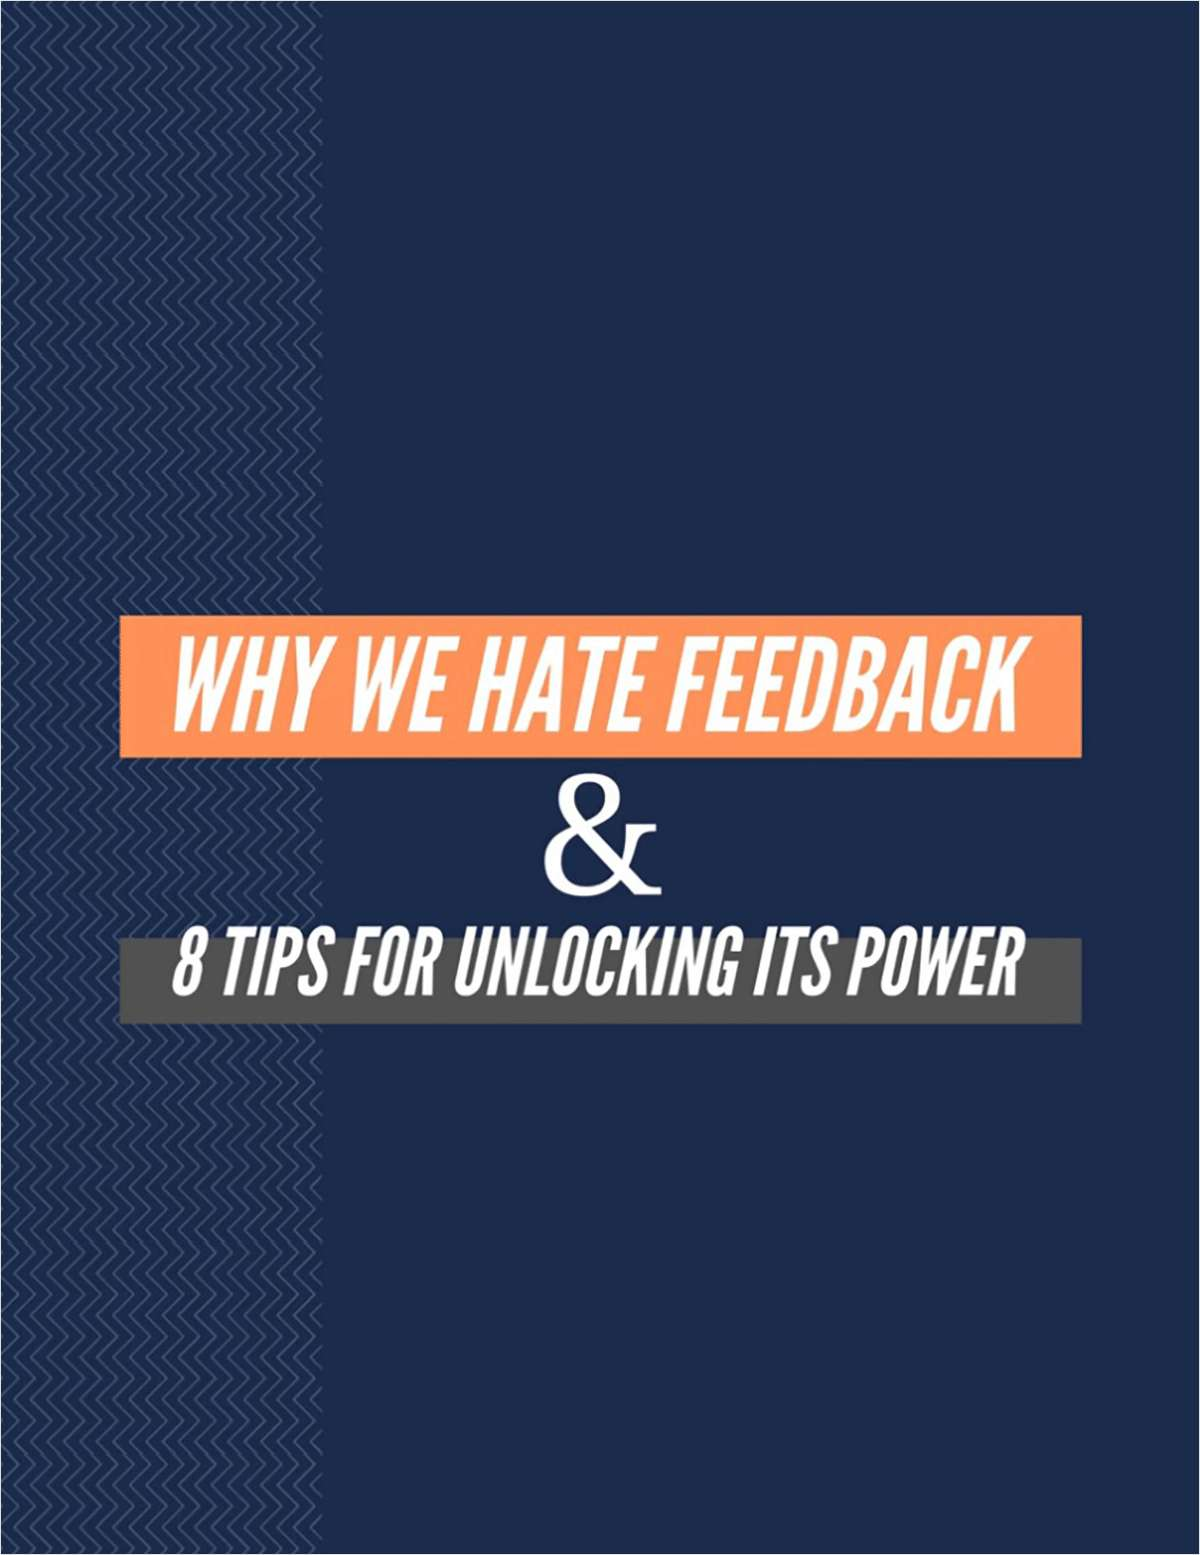 Why We Hate Feedback & 8 Tips for Unlocking its Power